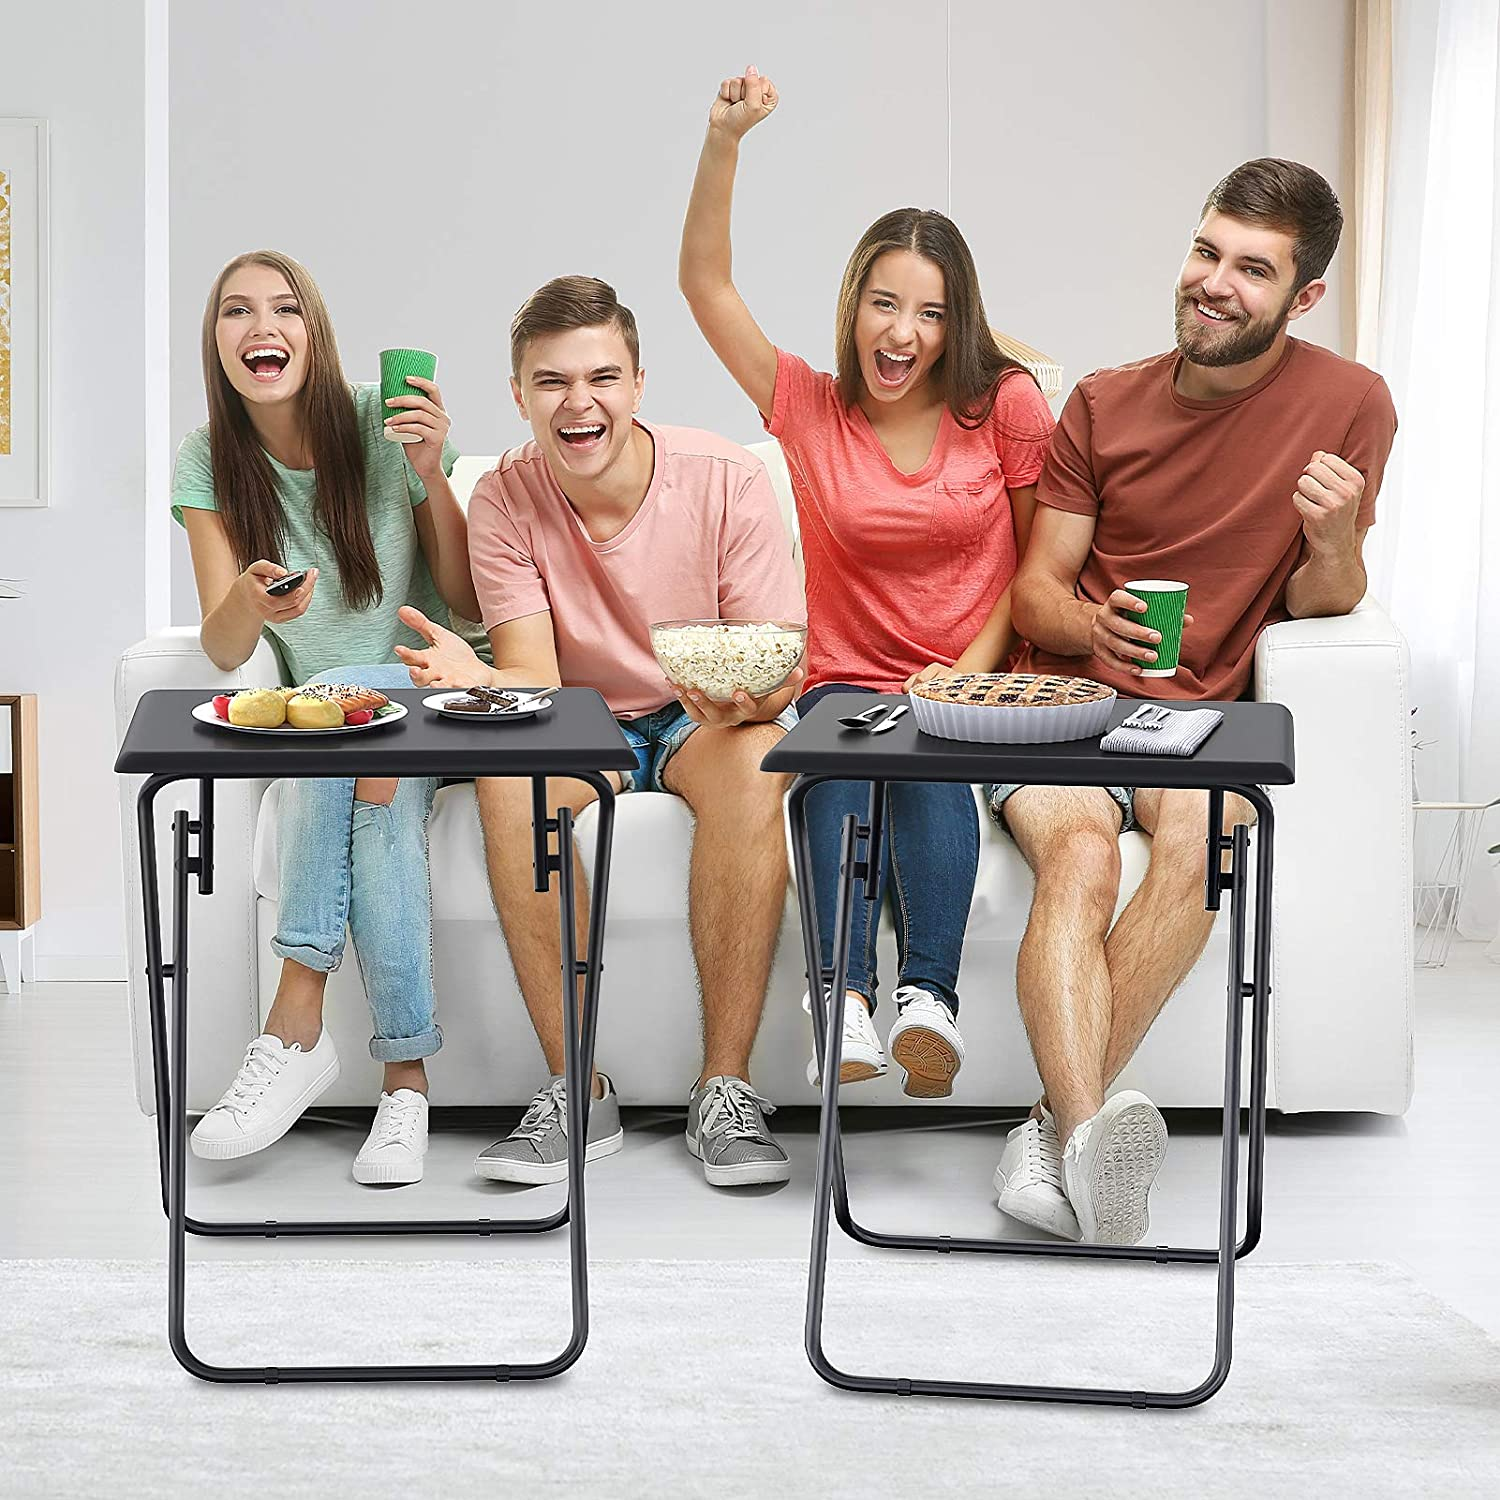 Snack Coffee End Table Ideal For Living Room Bedroom Fully Assembled Tv Table For Eating At Couch Stable Dinner Table Easy To Storage Ameriergo Folding Tv Tray Table Furniture Home